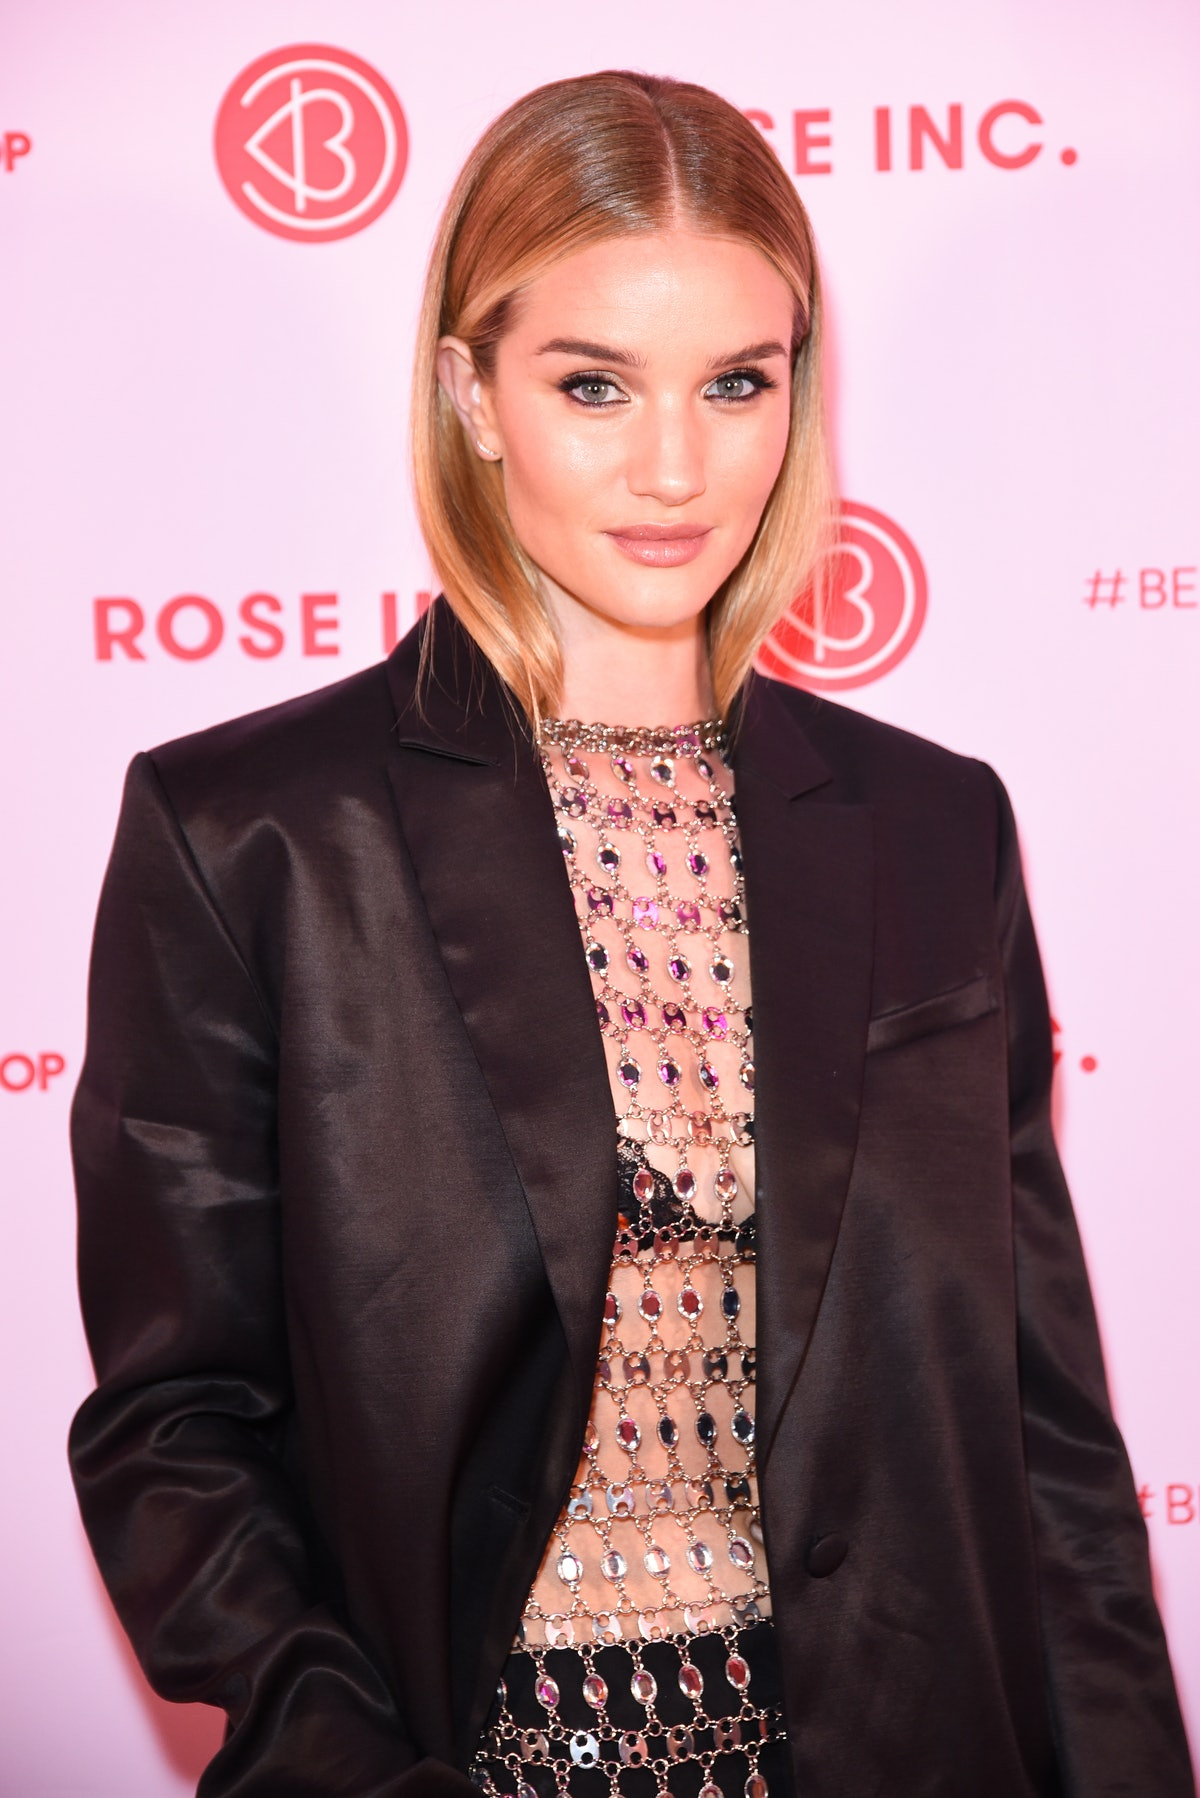 The Genius Eyebrow Hack Rosie Huntington-Whiteley Swears By That Costs Next To Nothing